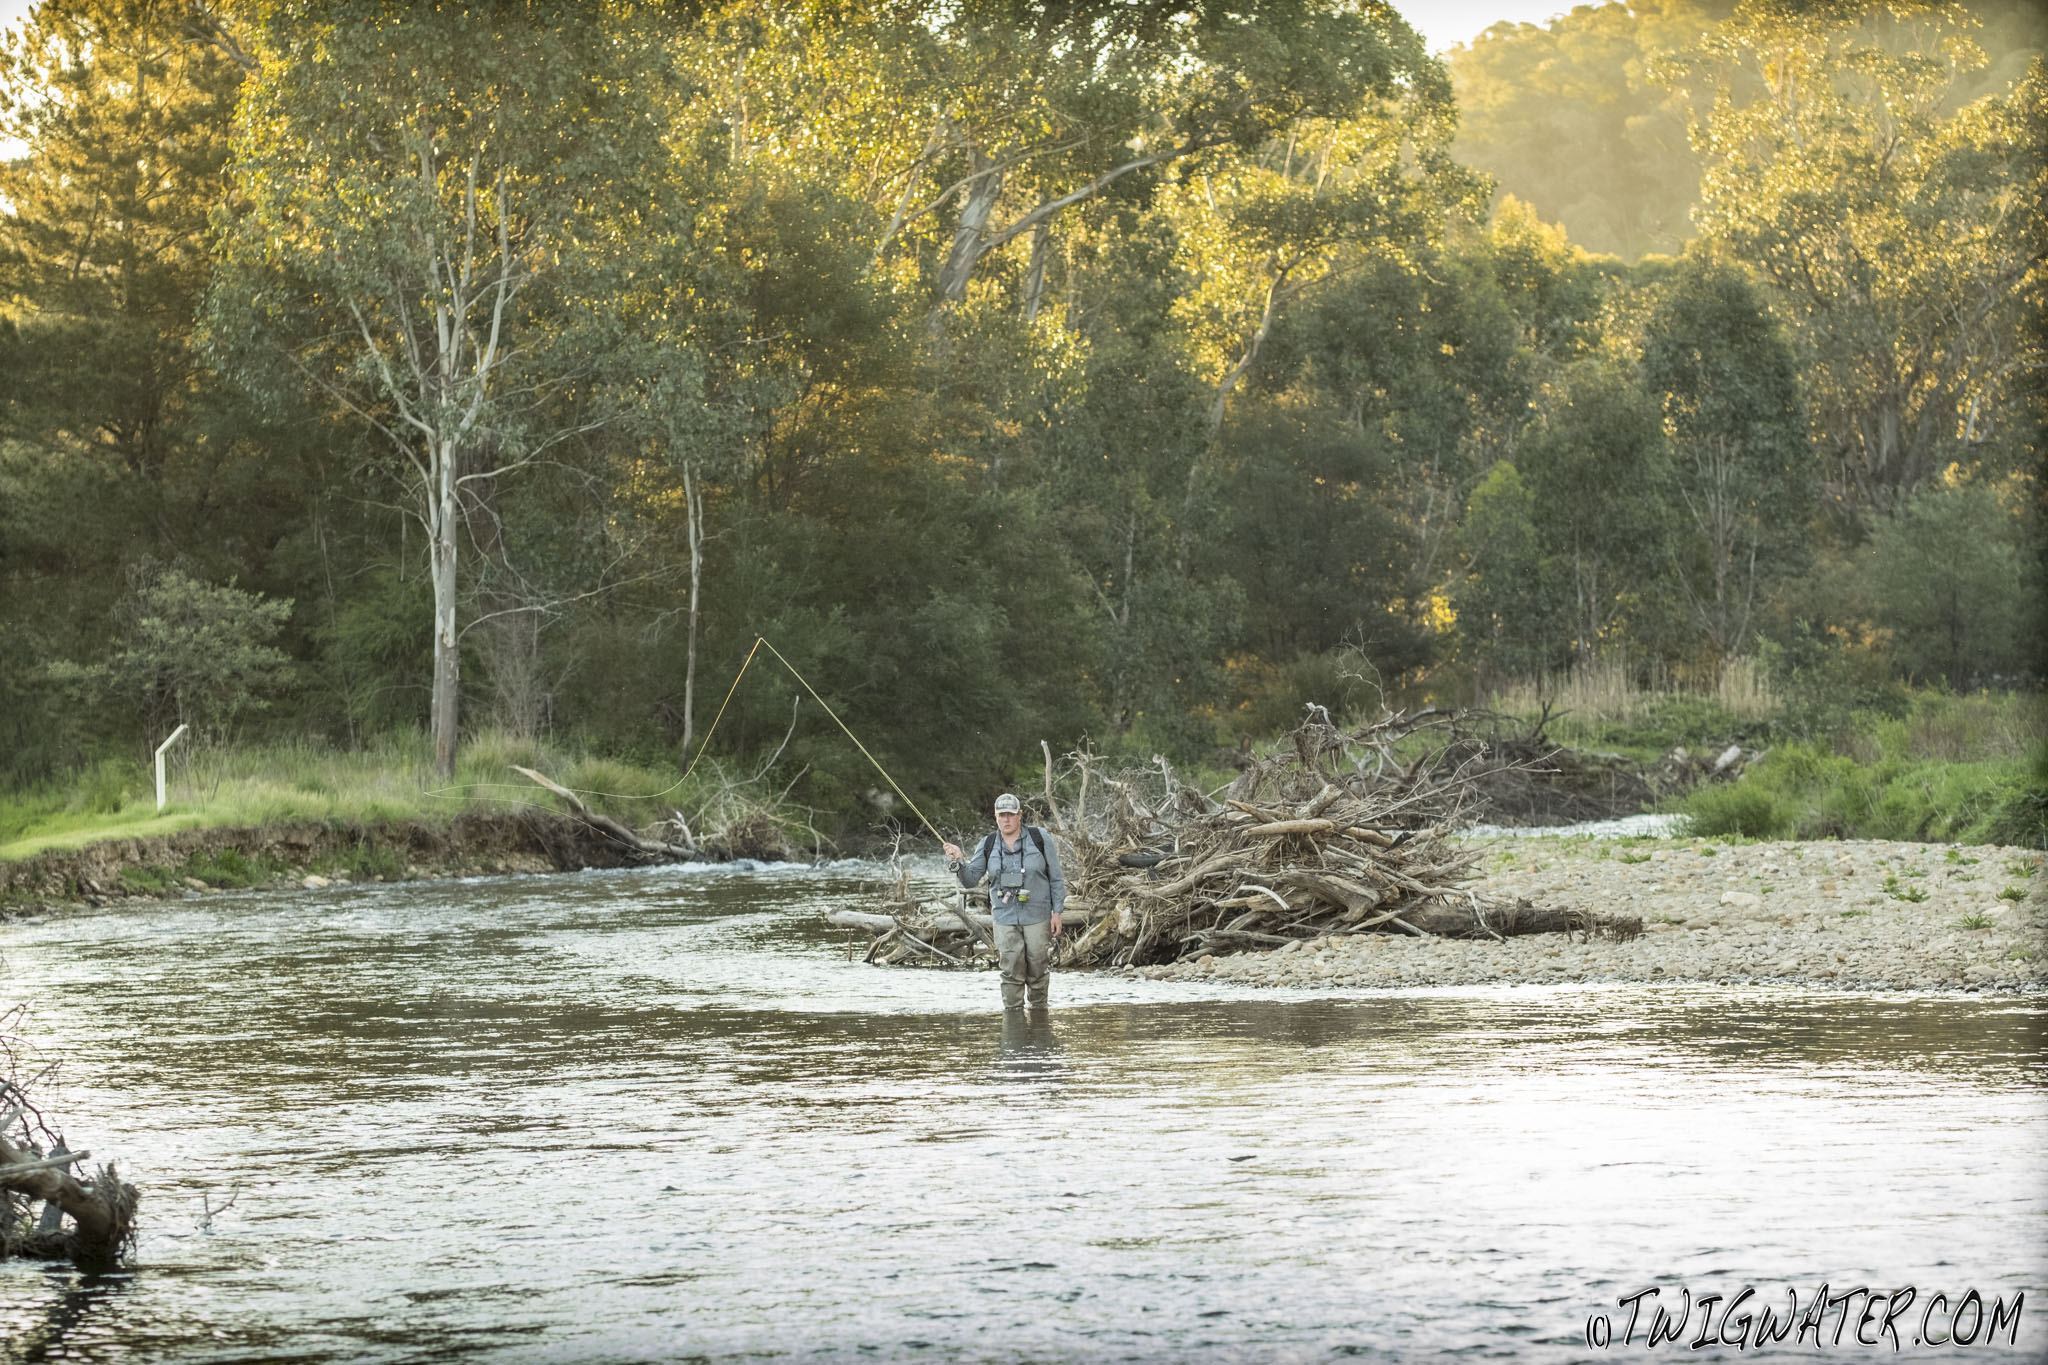 Fly fishing the Ovens River on Twigwater